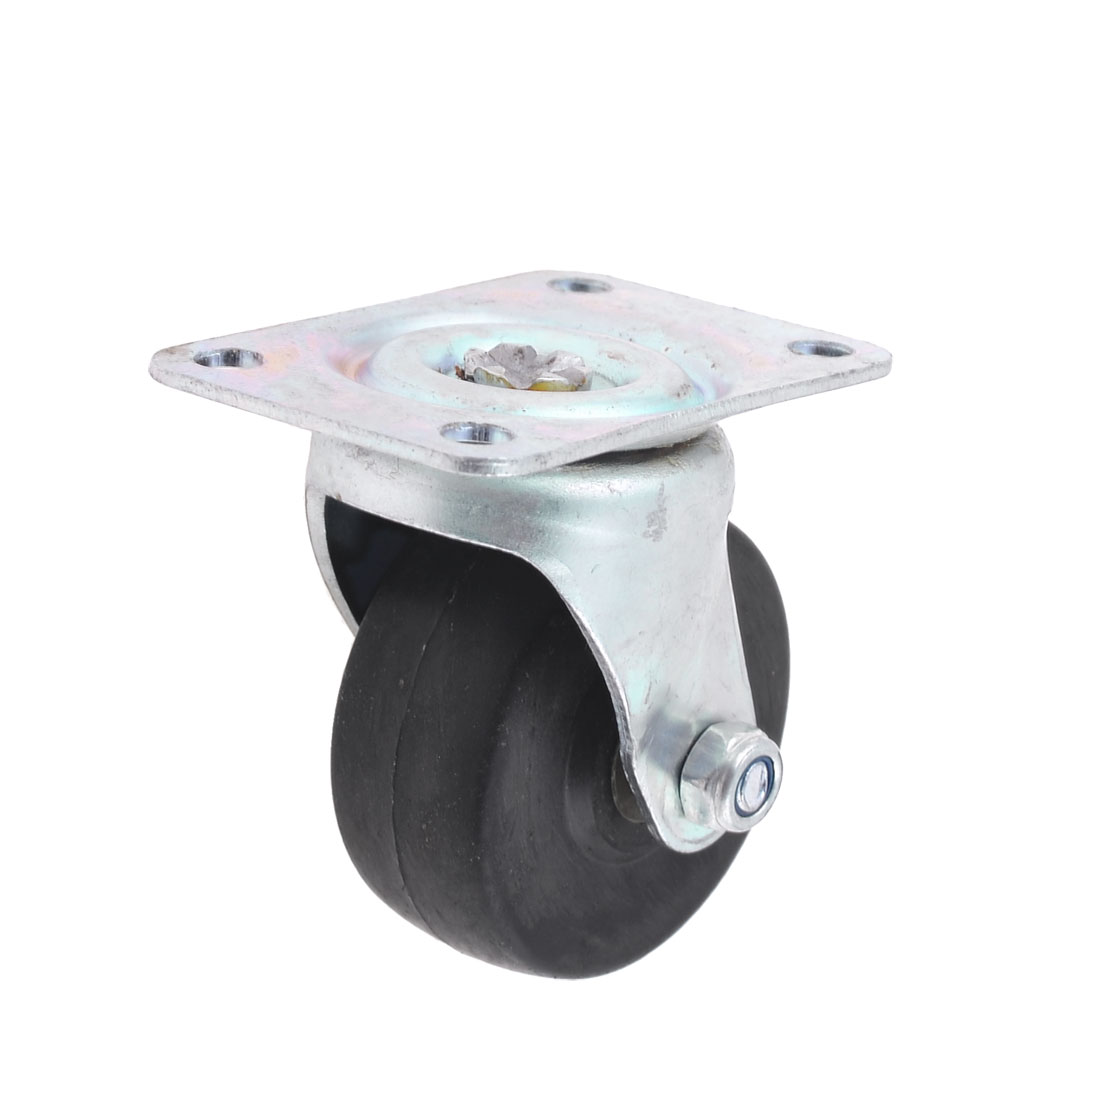 Plastic Metal Flat Plate 50mm Fixed Type Rigid Caster Wheel Black